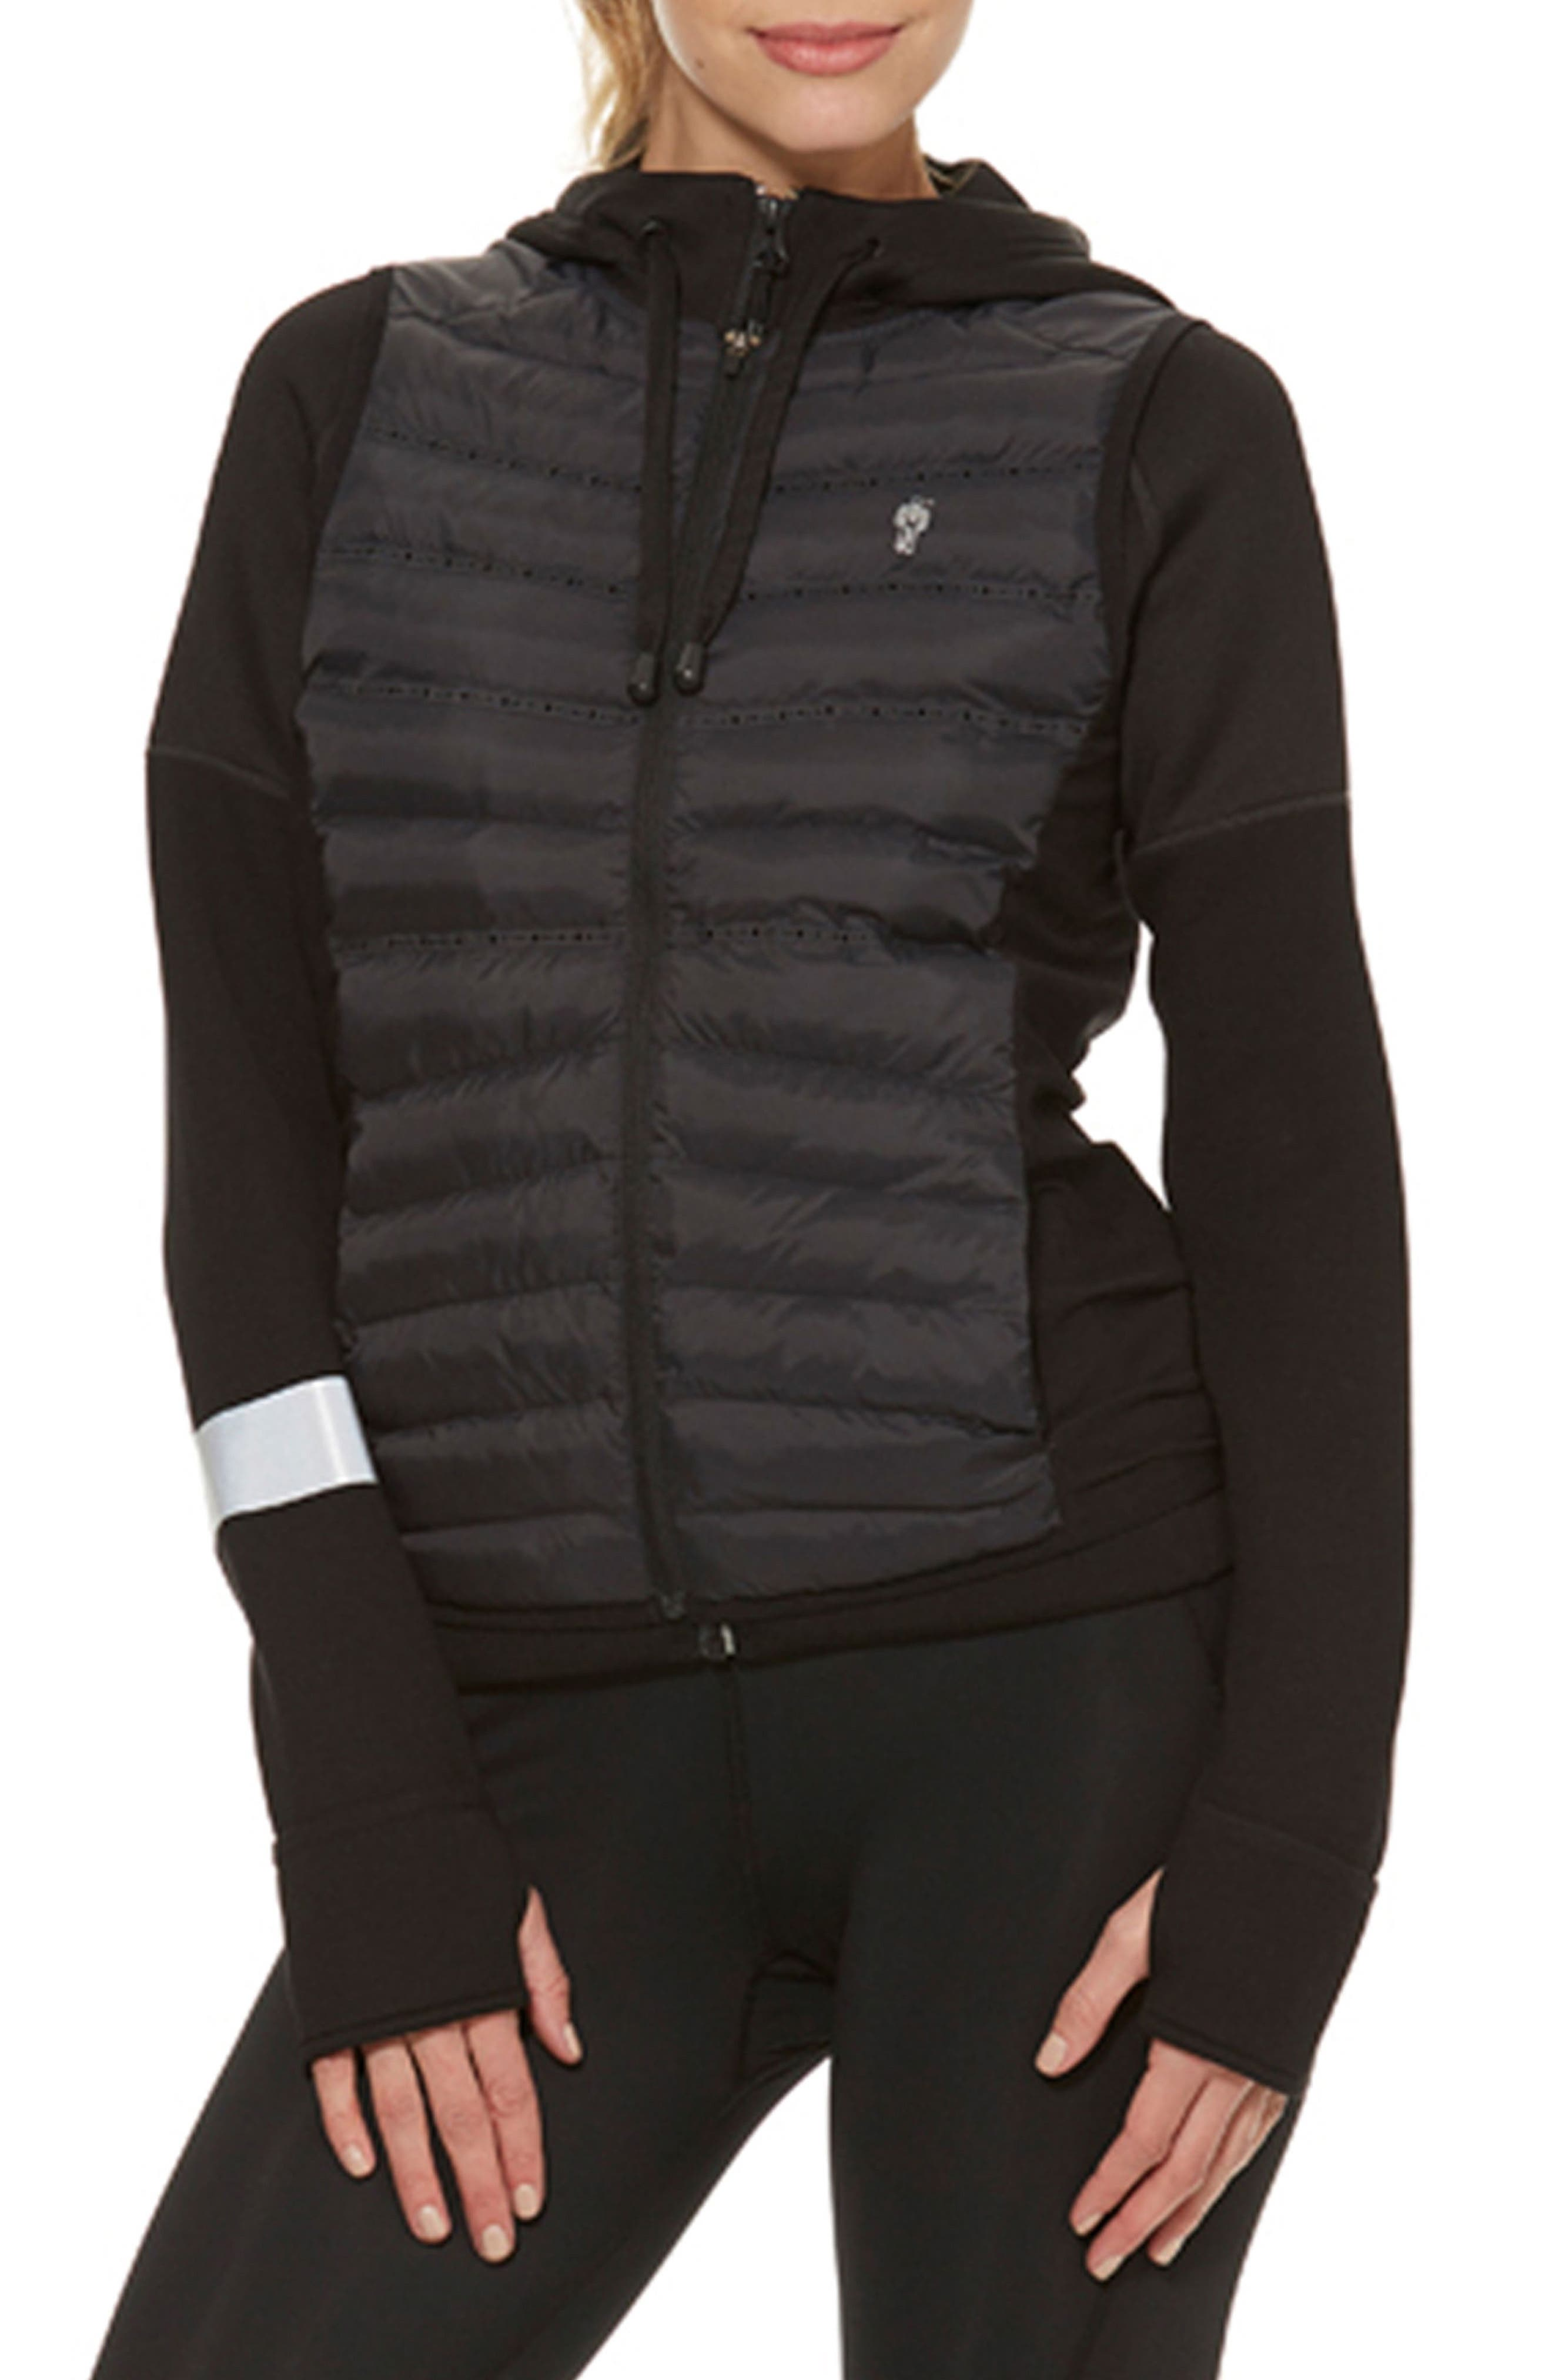 HPE Brecon Beacons Water-Resistant & Windproof Insulated 2-in-1 Jacket